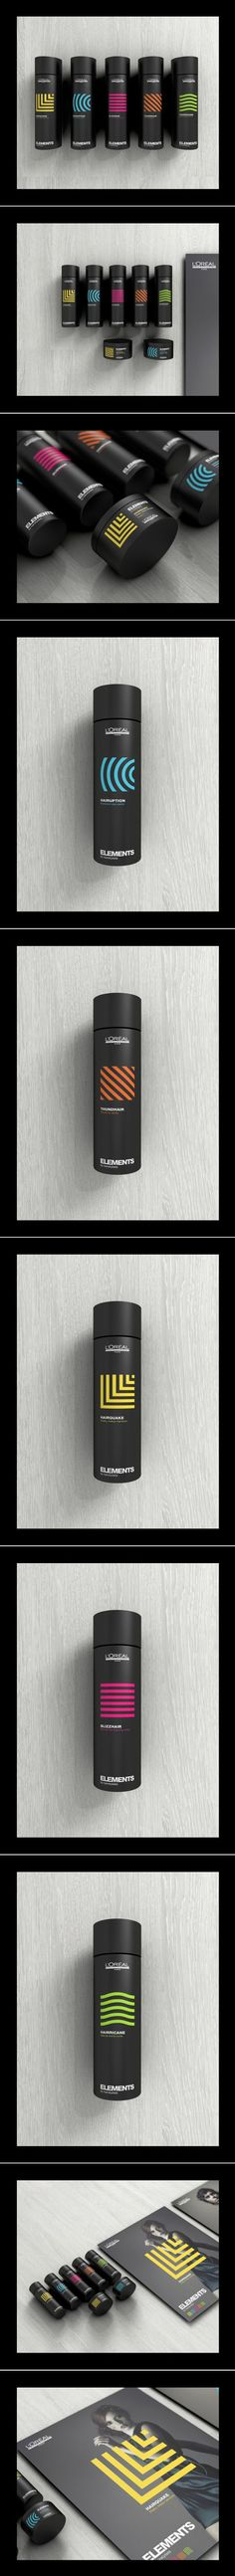 LOREAL Professional Hair Care Paris Branding and Packaging by Romain Roger | Fivestar Branding – Design and Branding Agency & Inspiration Gallery